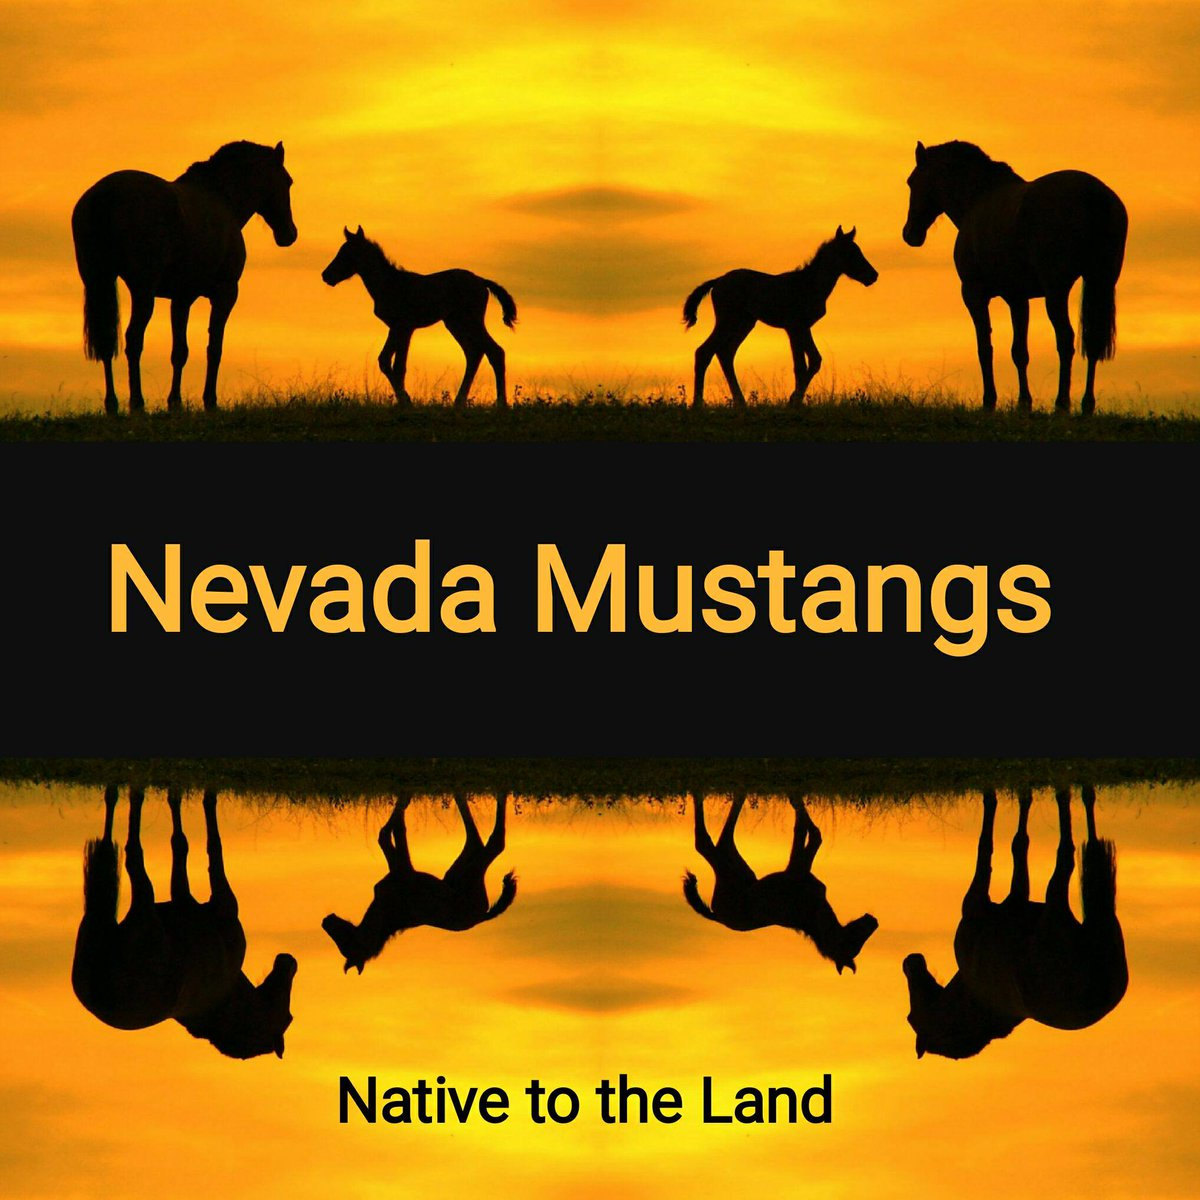 #Blm rounding up 90% #wildhorses on 1 hma.  Only 500 horses to 50,000 acres.  This does not constitute overpopulation.  @friendsofanimals @ awhc pls help. Litigation works <br>http://pic.twitter.com/WKarvHk89n